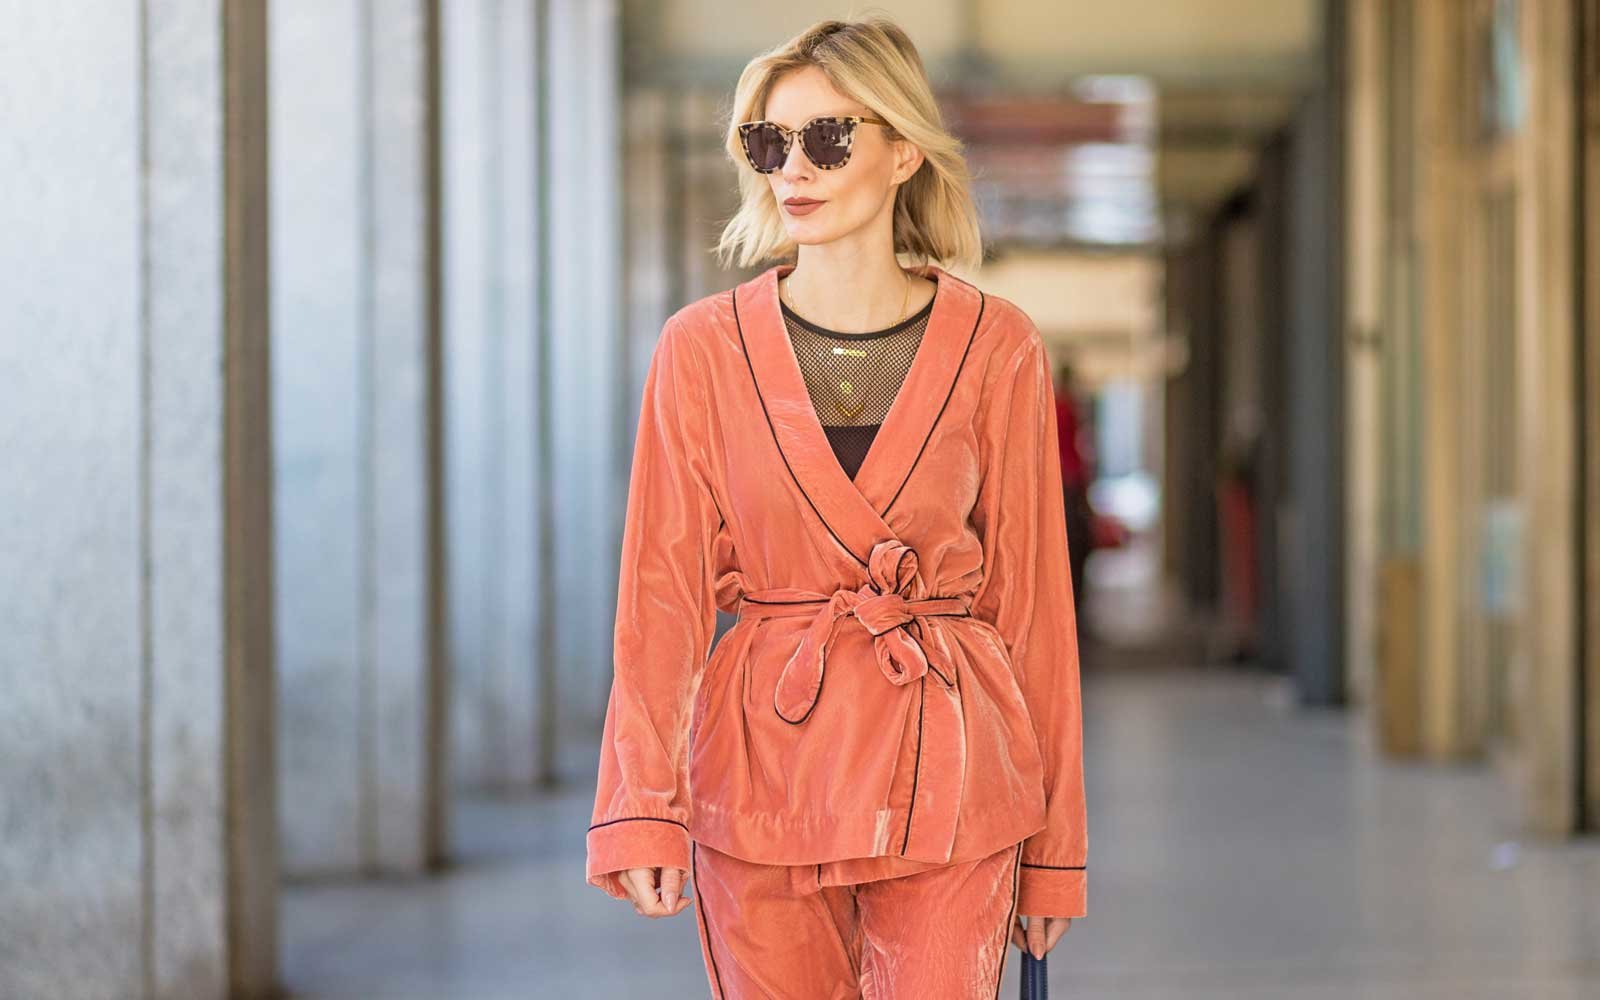 Chic PJs that make the case for never getting dressed forecast